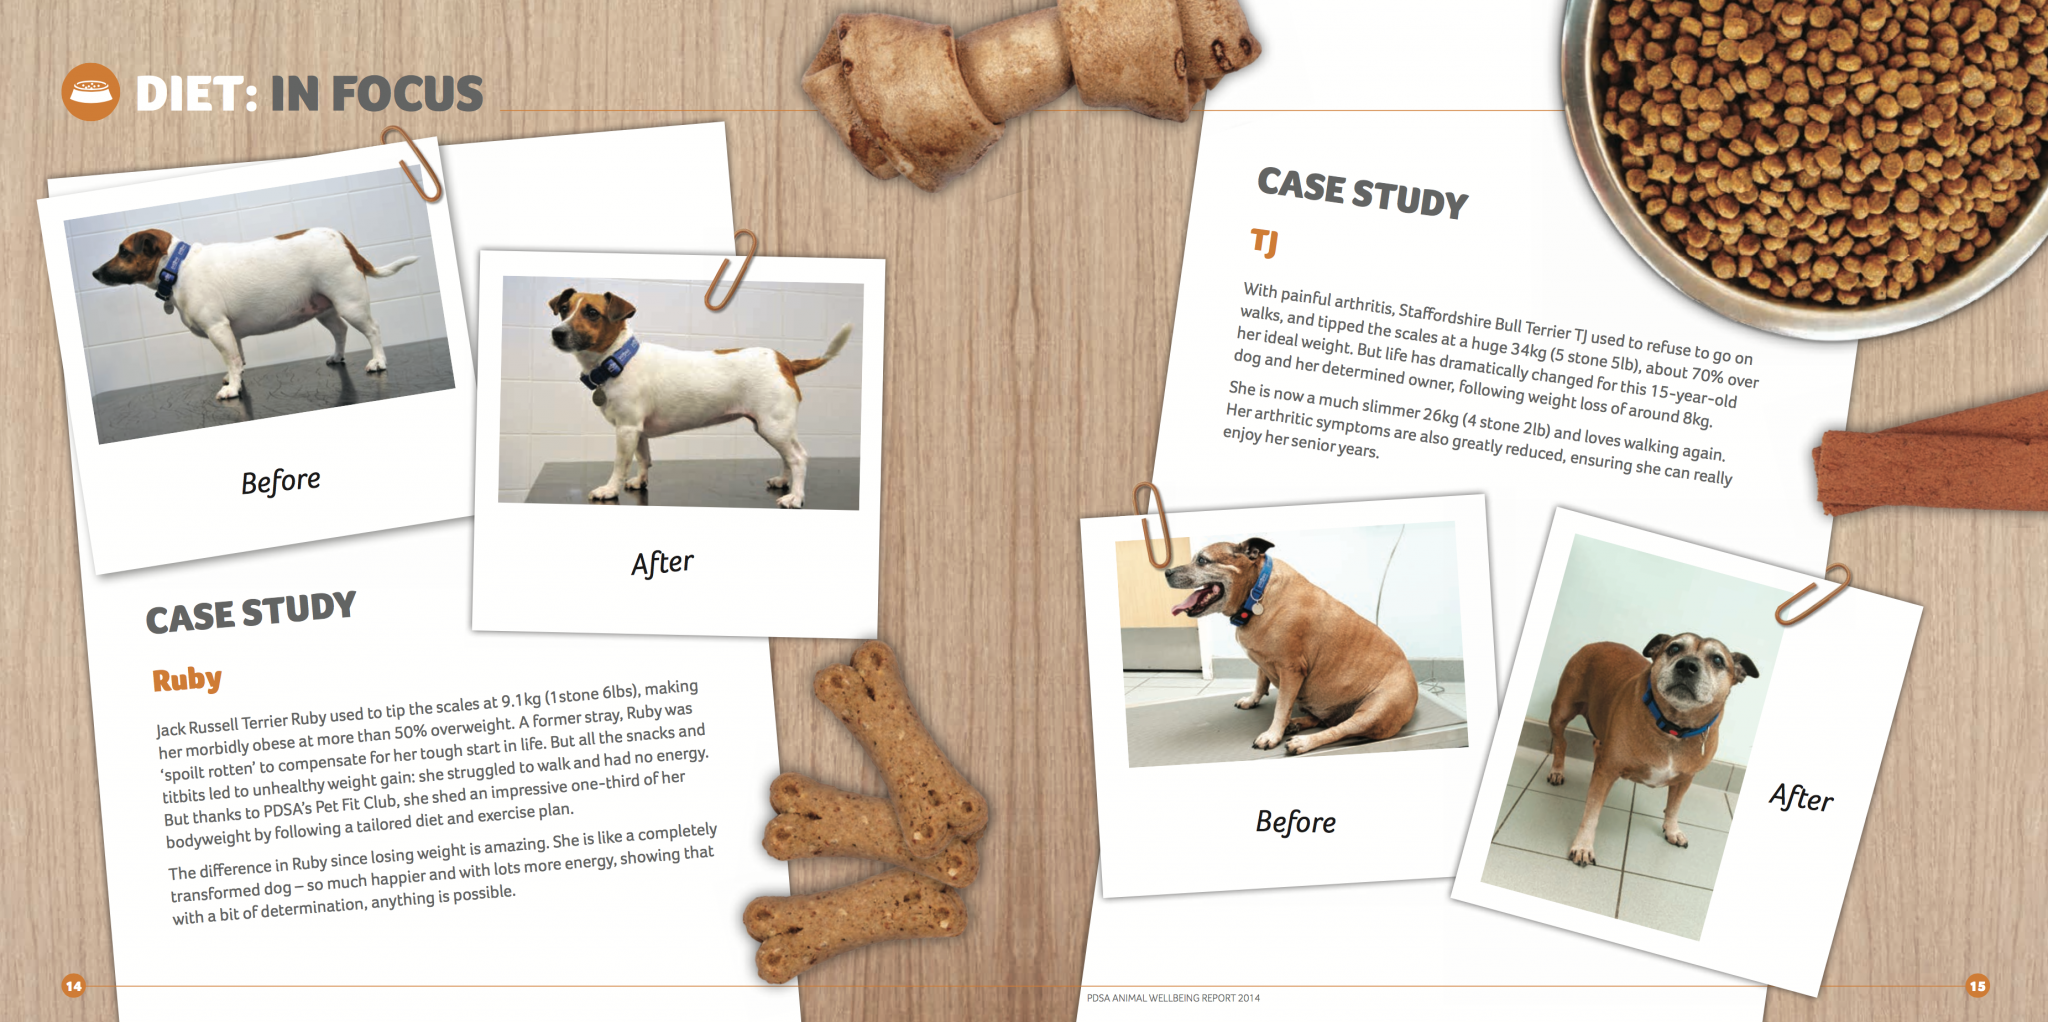 Case studies show how much of a better life dogs get once they lost weight. (Credits: PDSA Animal Wellbeing Report 2014)